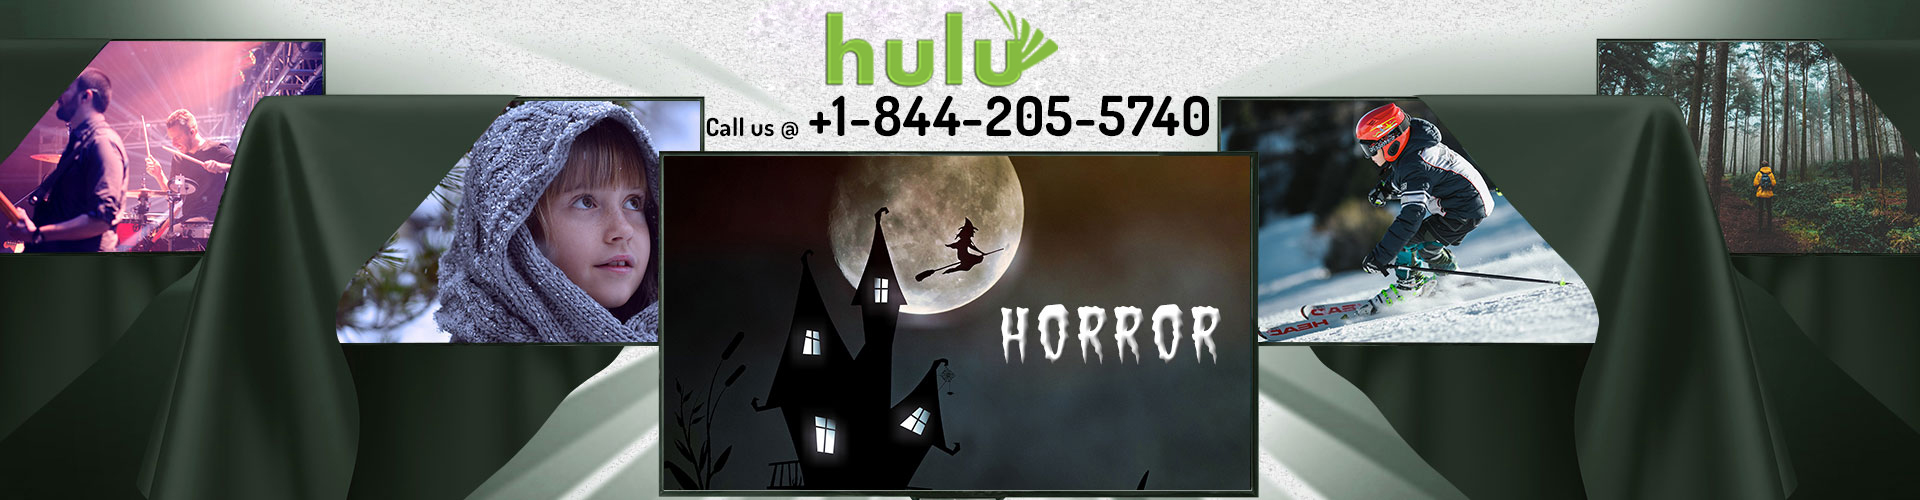 Technical Support for Hulu Channel Activation